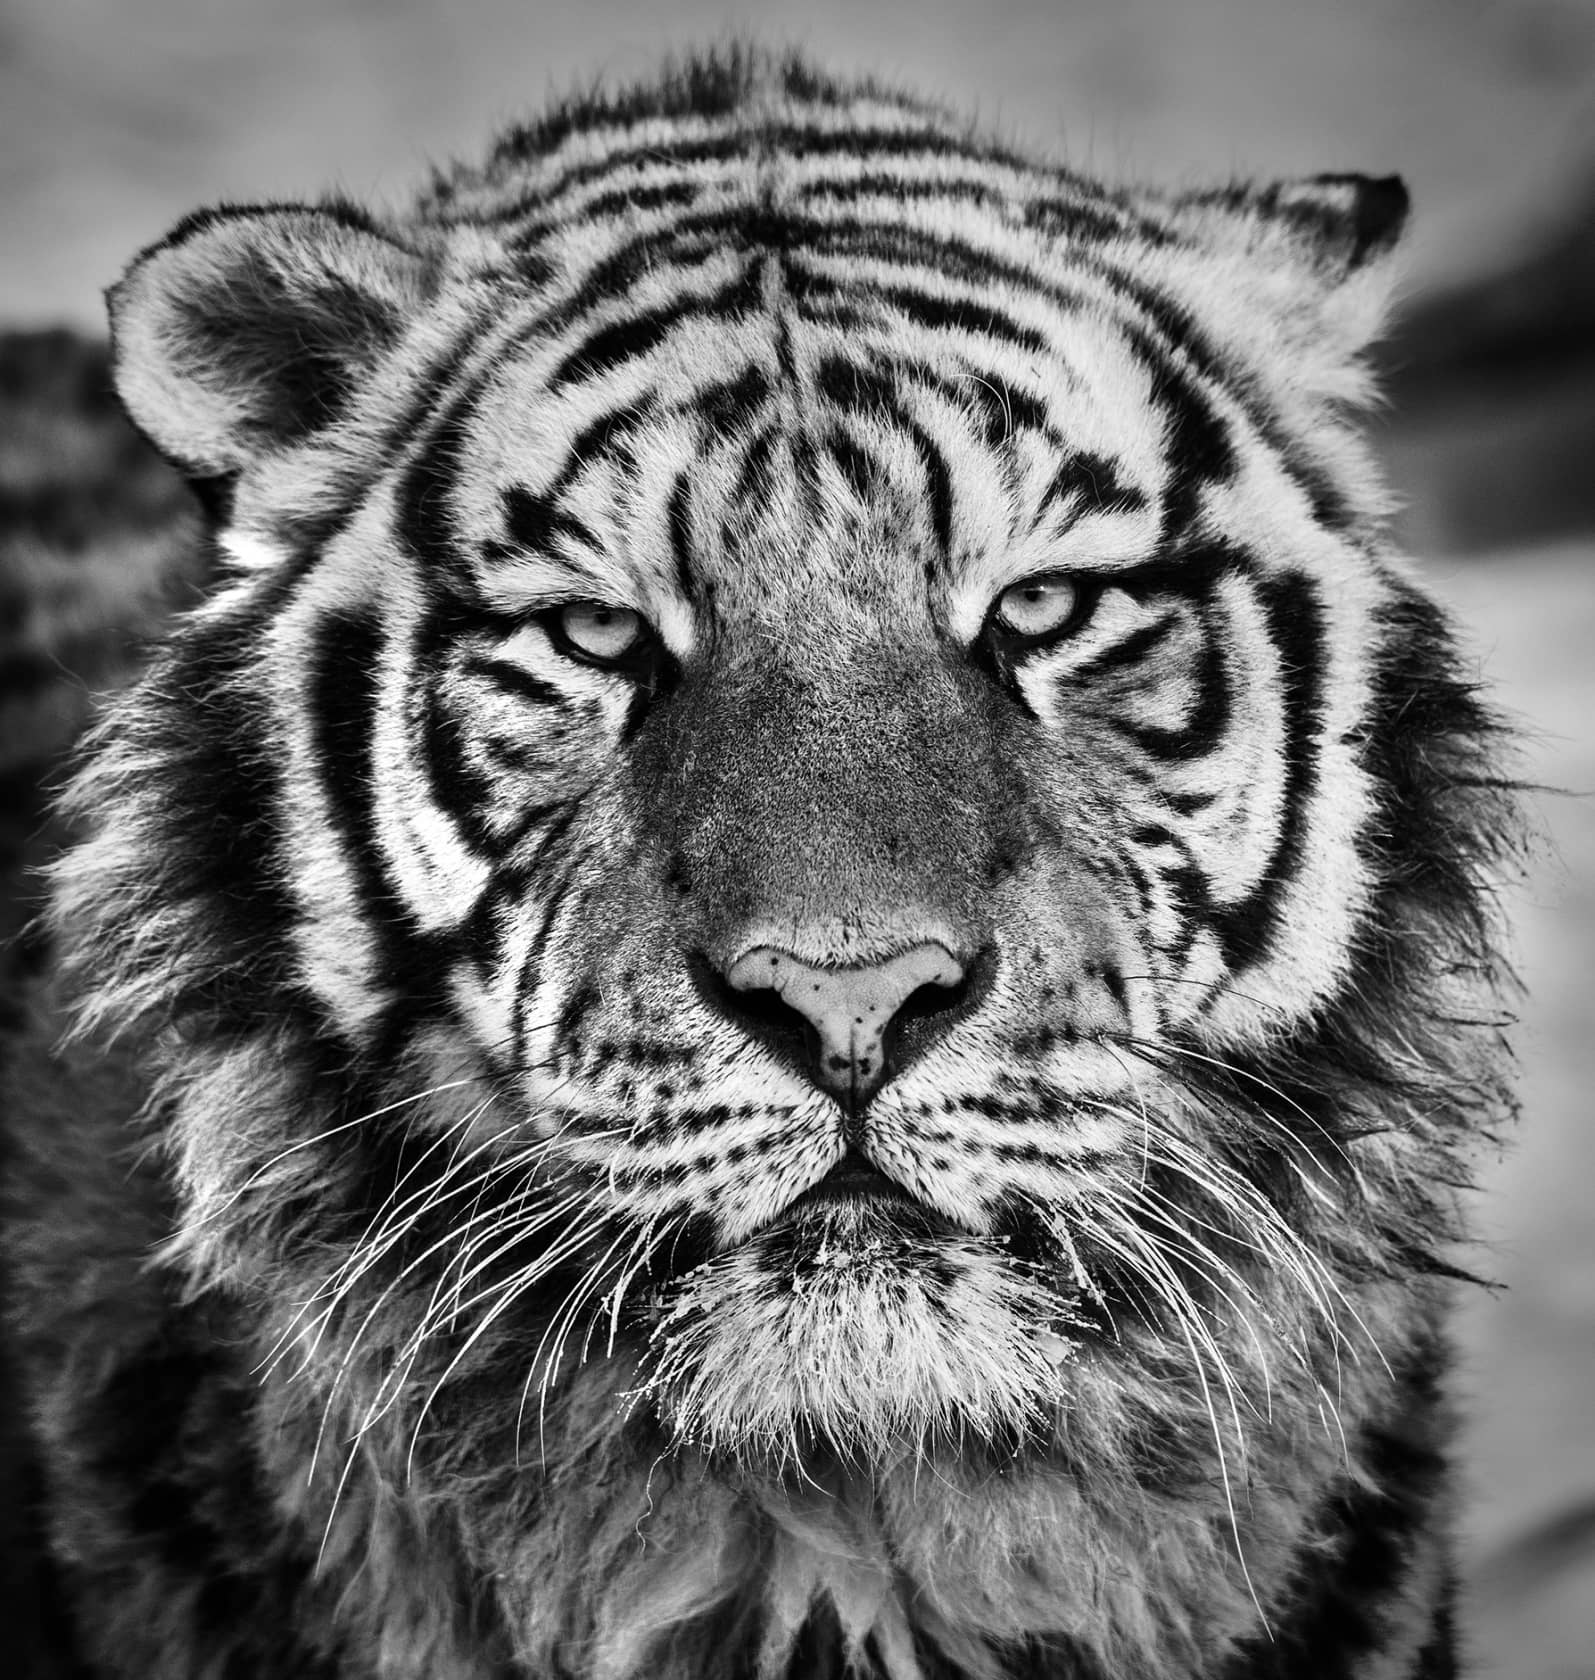 David Yarrow Harbin Archival pigment print